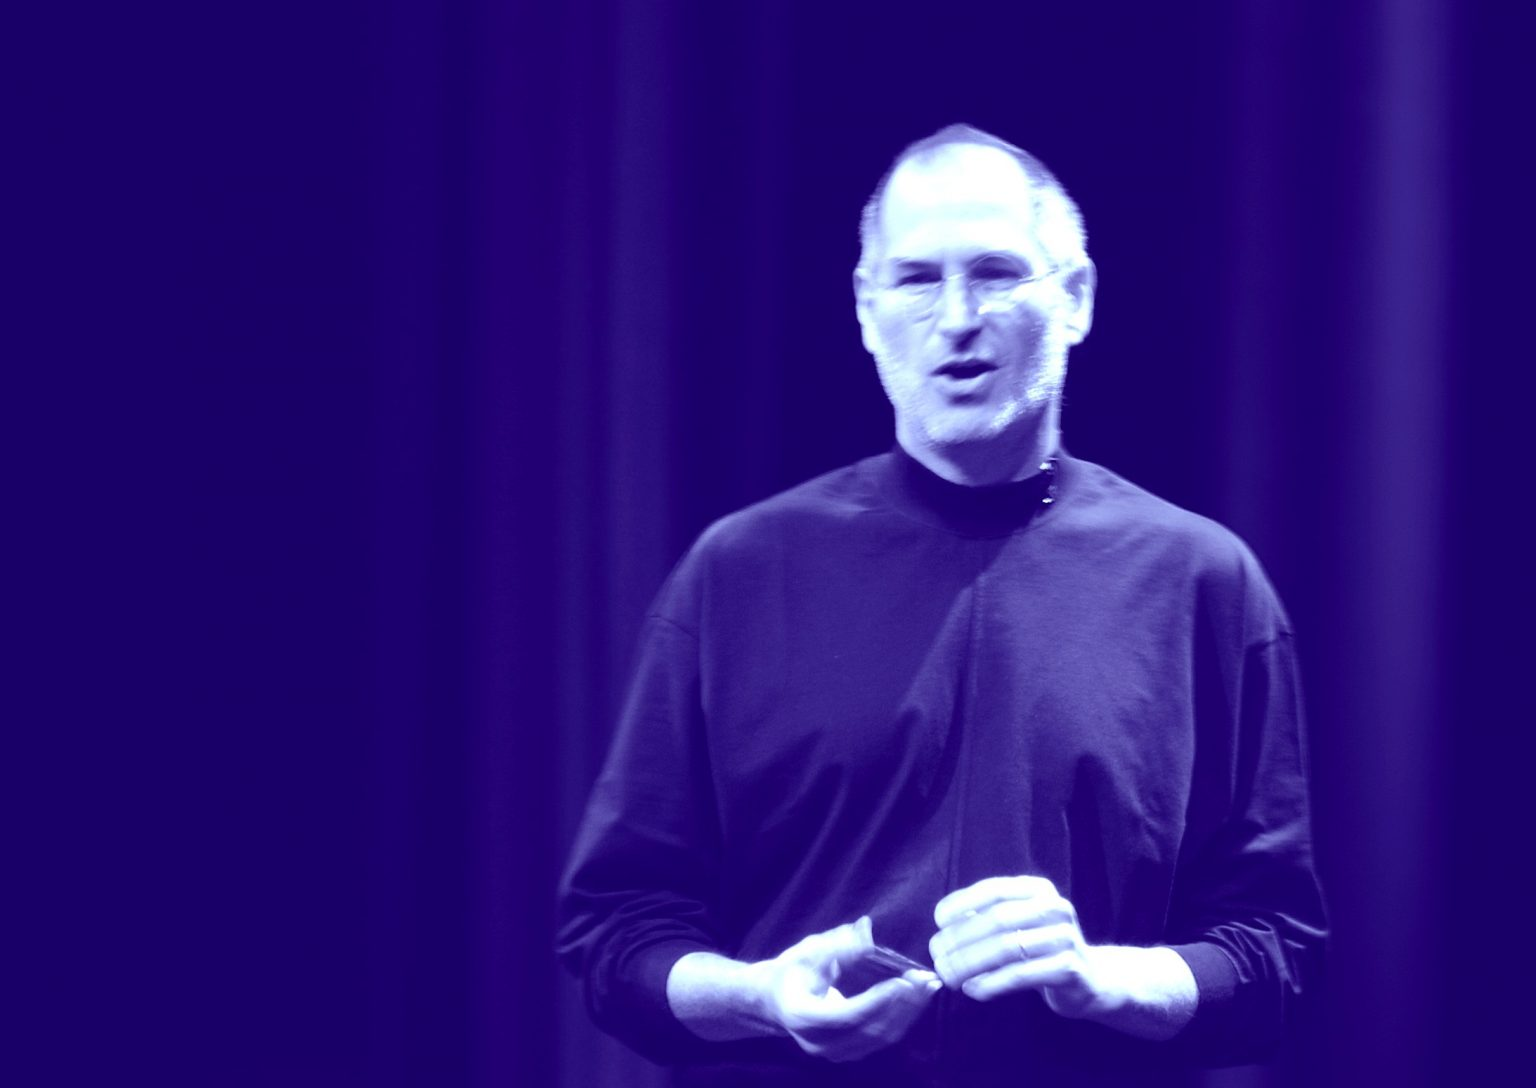 Steve Jobs only turned off his phone while hanging out with Apple design chief Jony Ive.